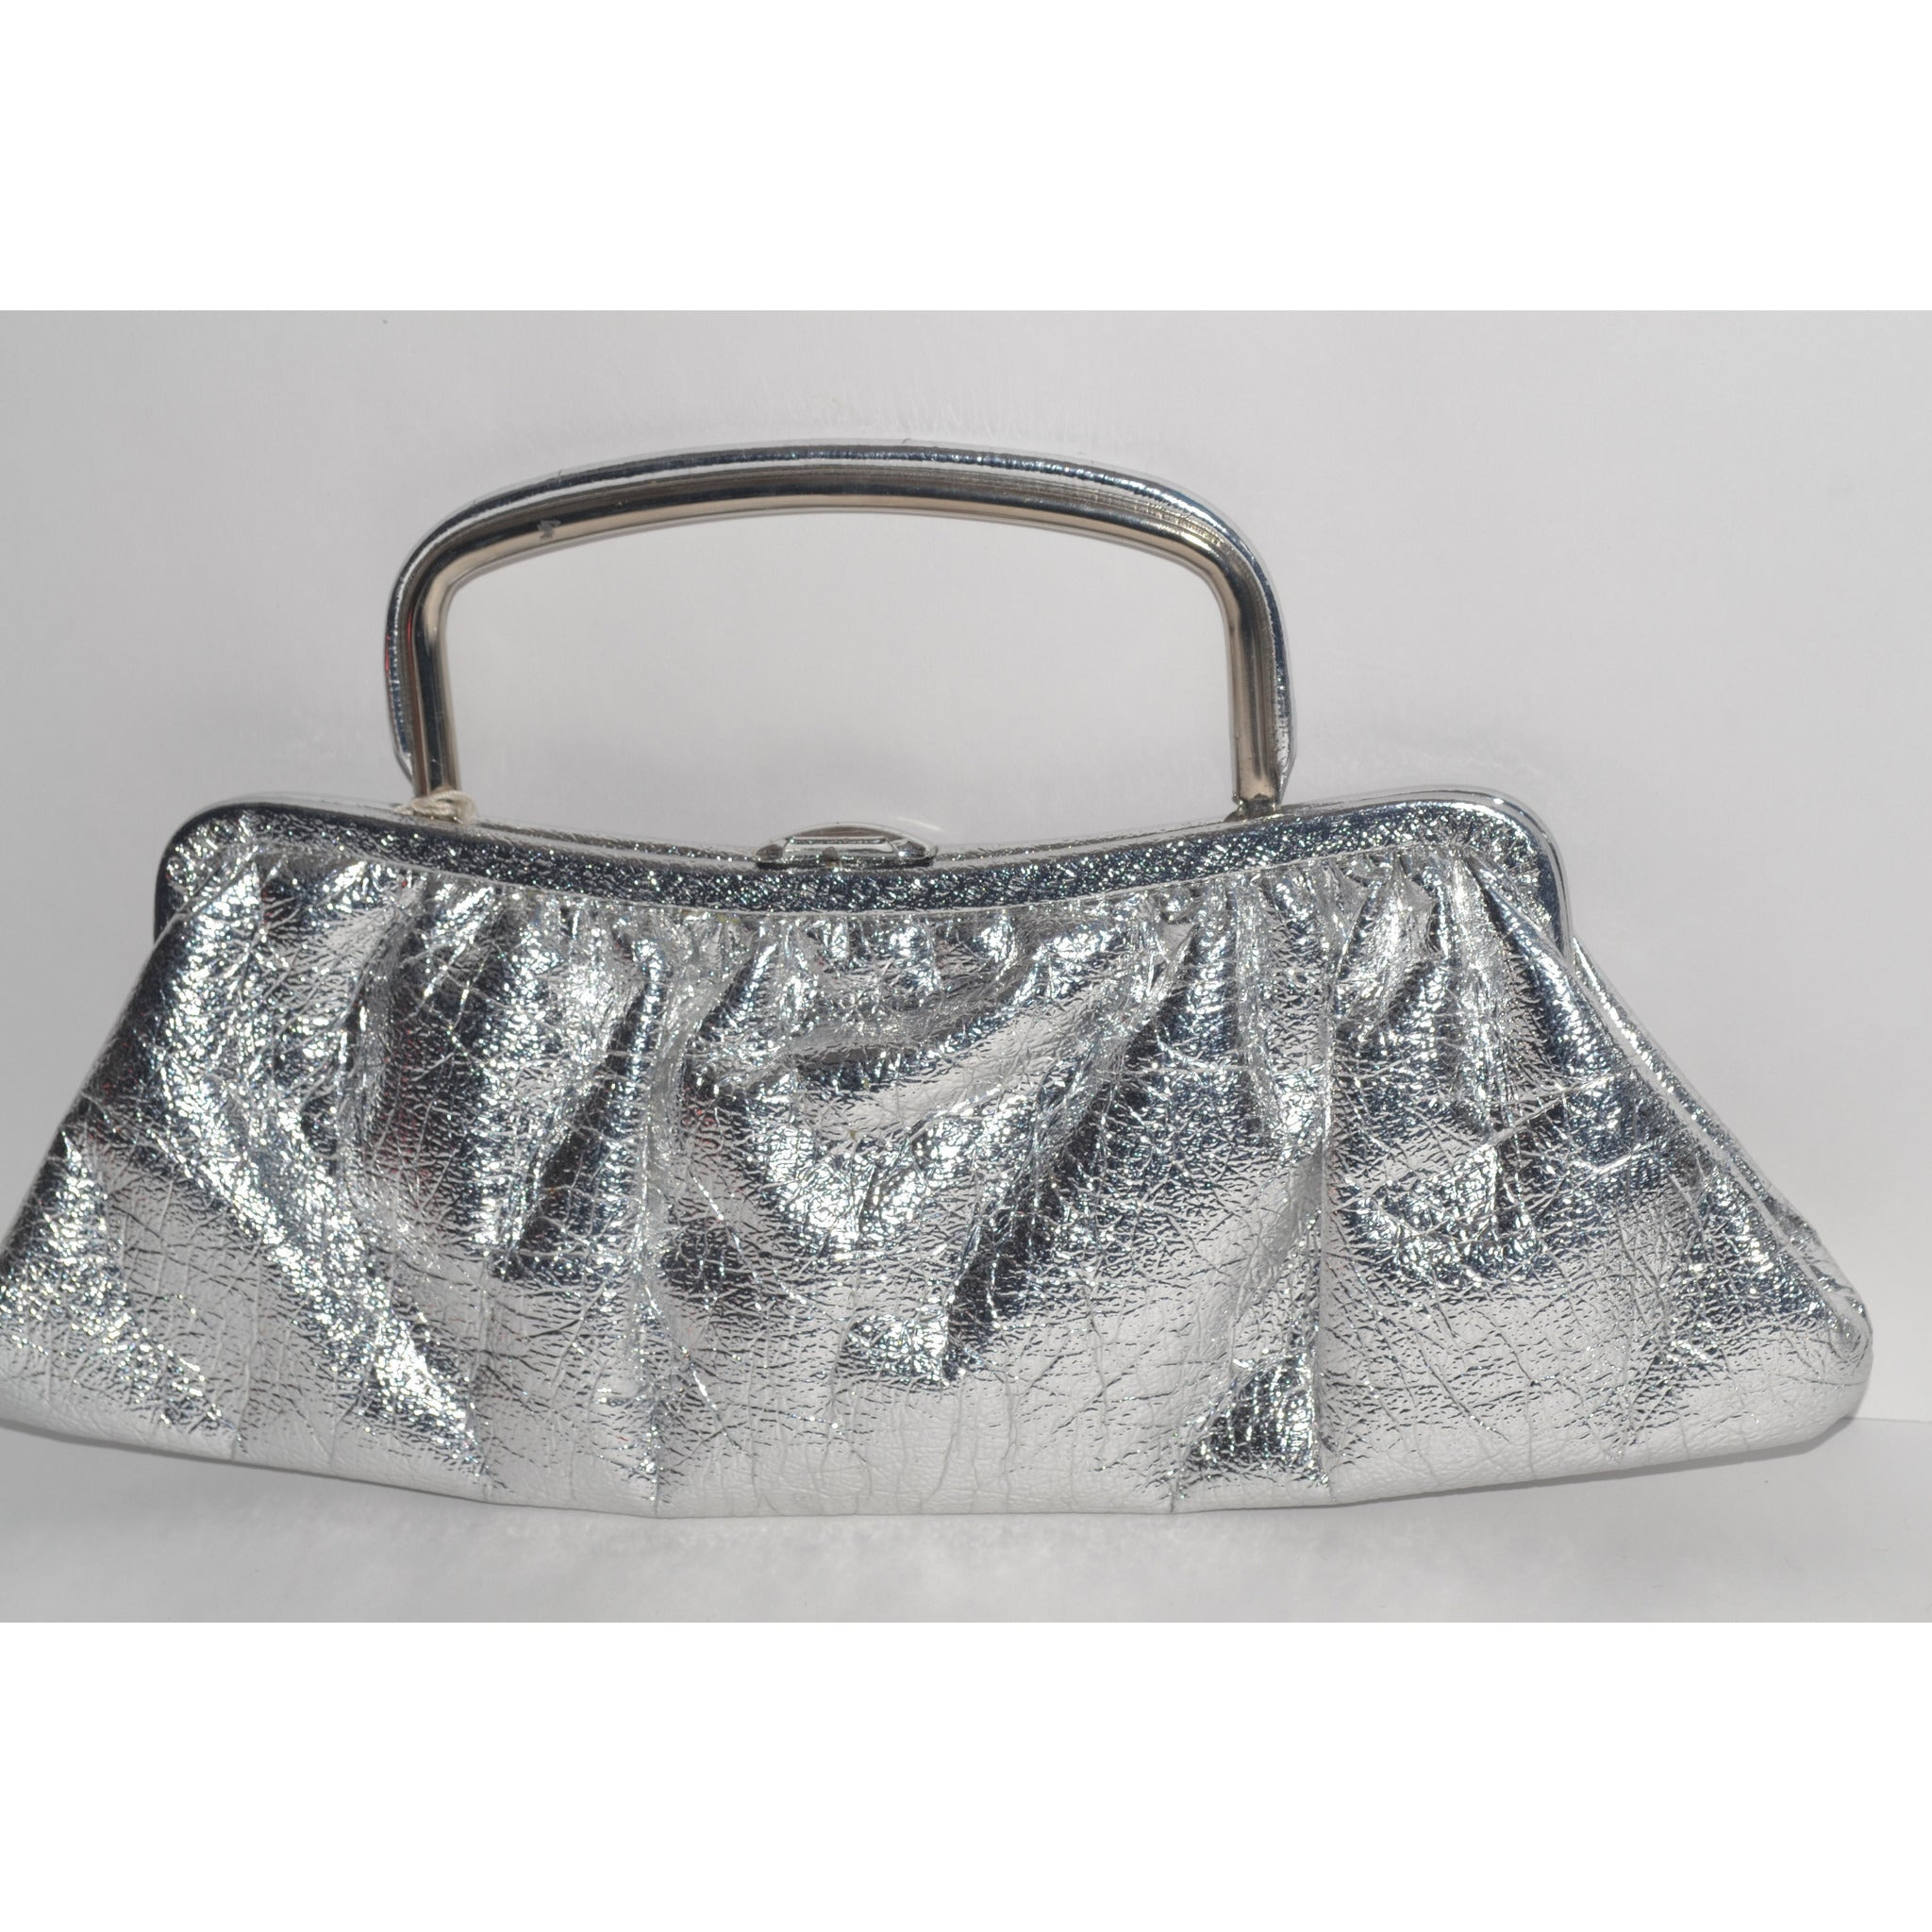 Vintage Silver Lame Clutch Purse